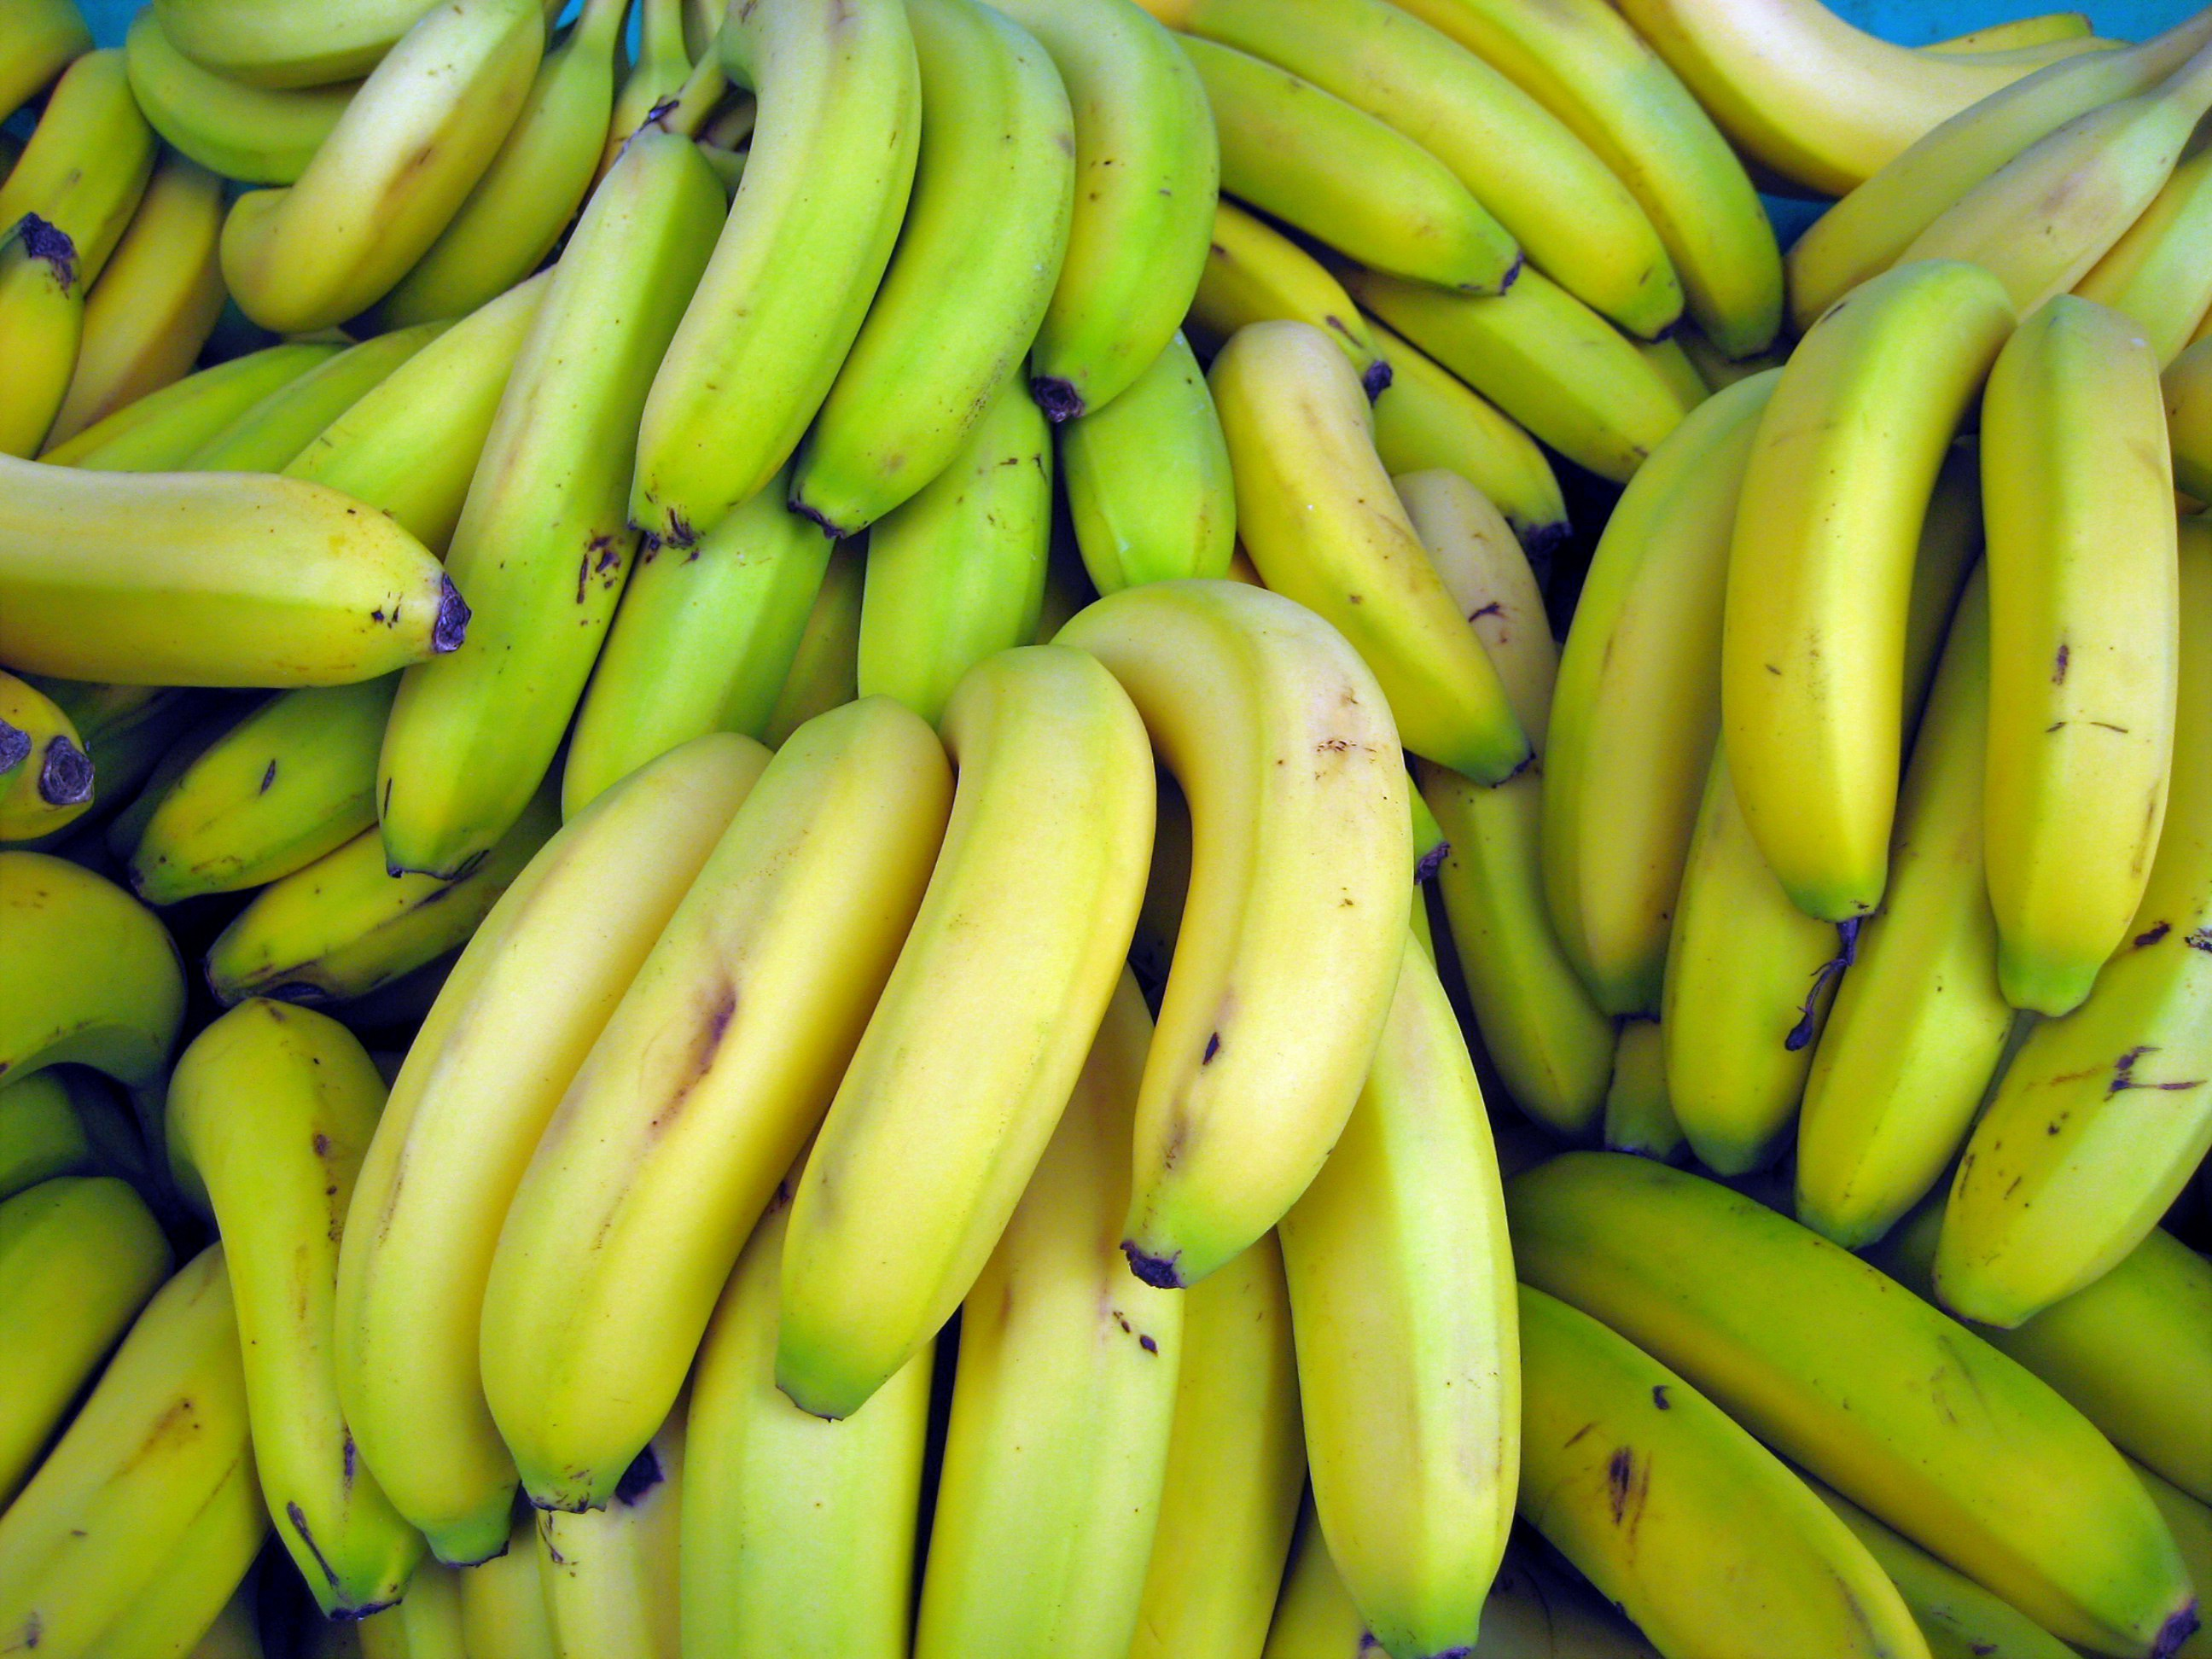 Bananas - 12 photo